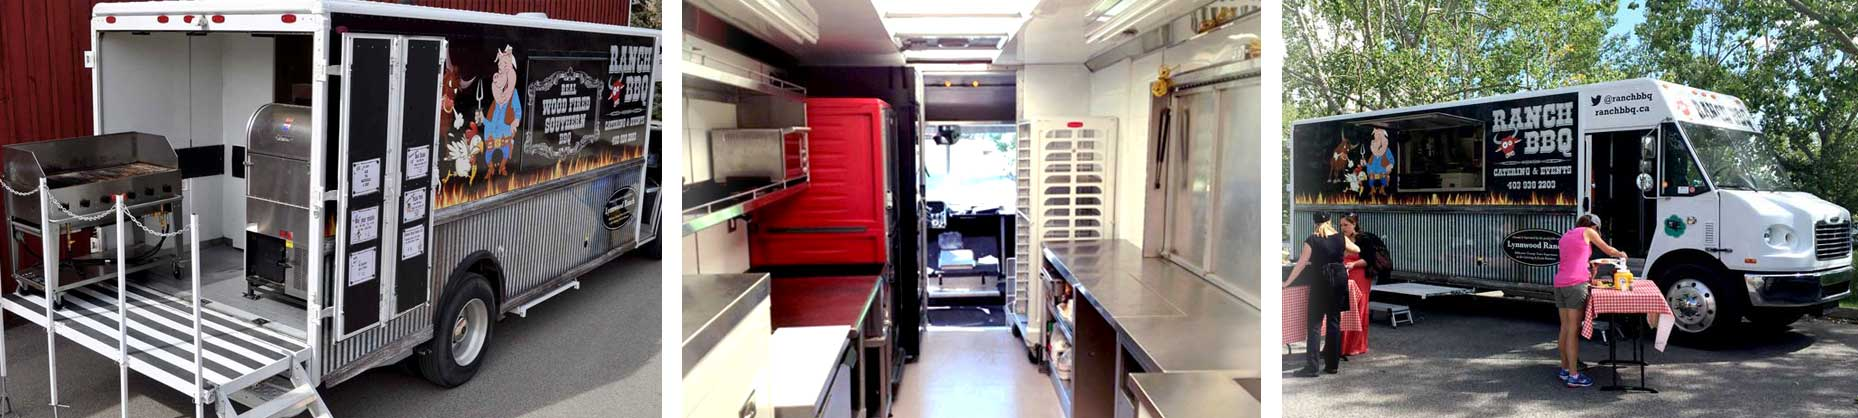 About Our Ranch BBQ Catering Food Truck